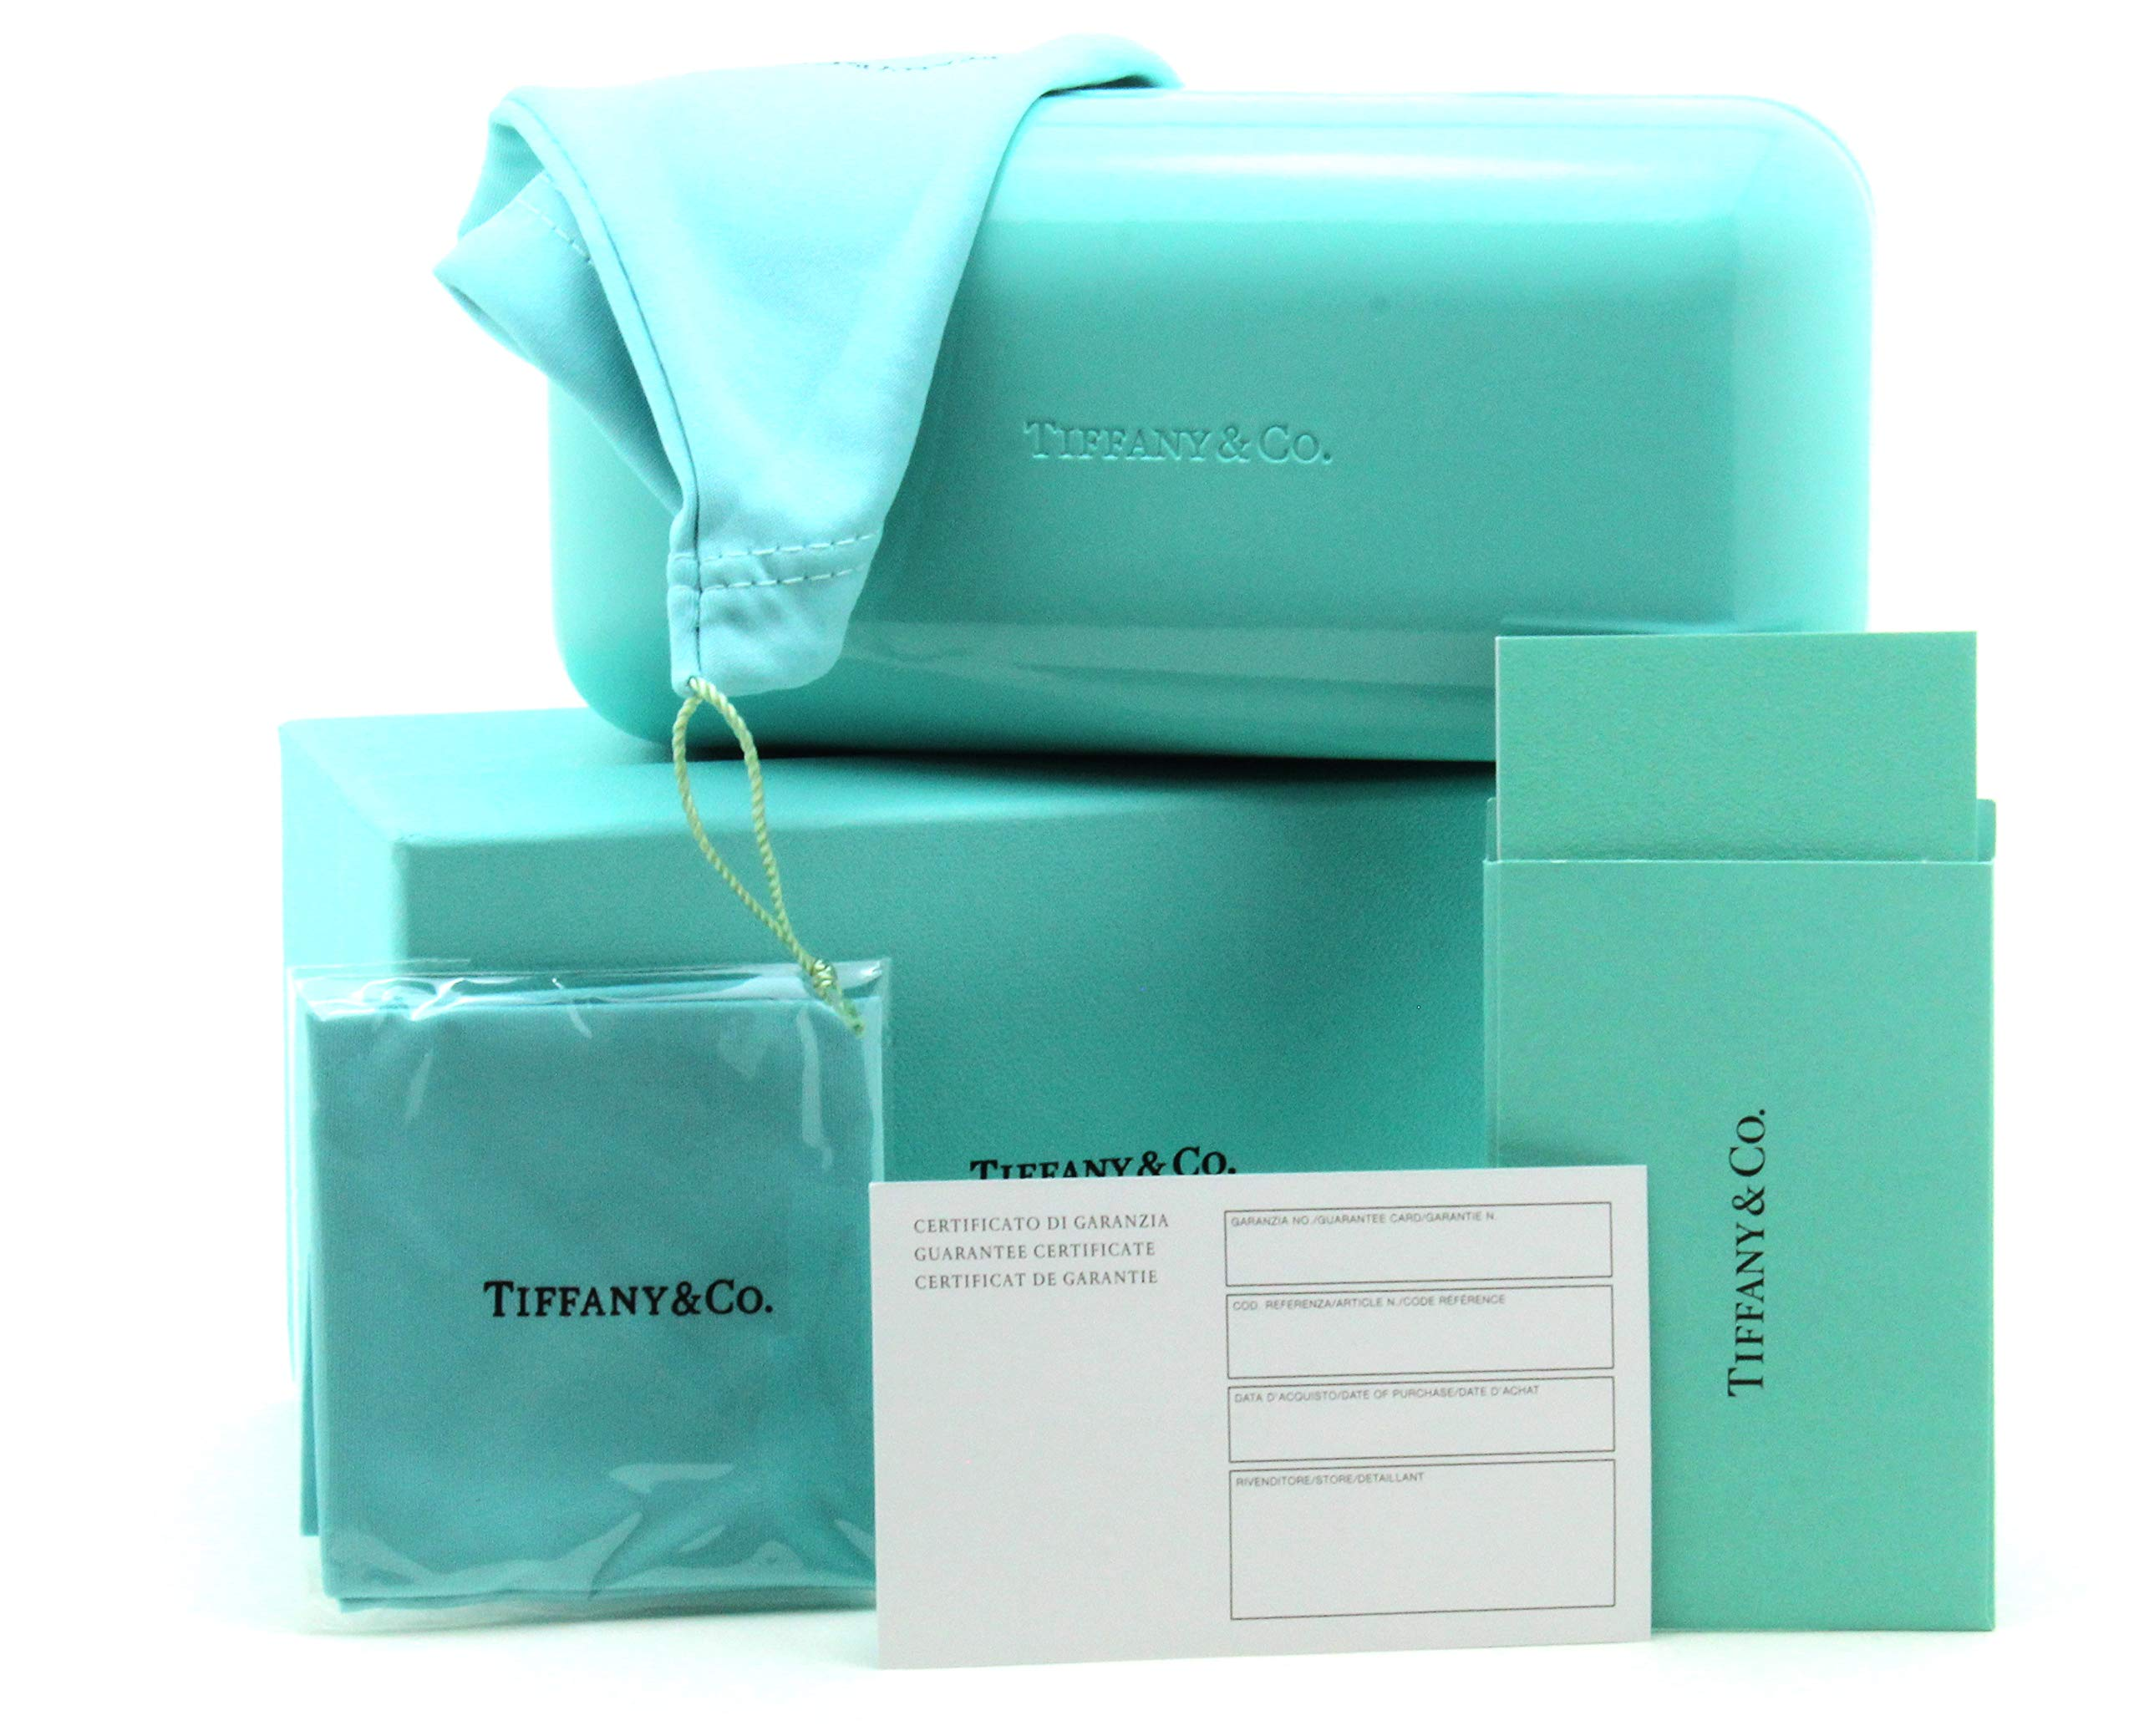 Tiffany & Co. Hard Clam-Shell Case for Sunglasses Eyeglasses w/Original Retail Packaging (Large)